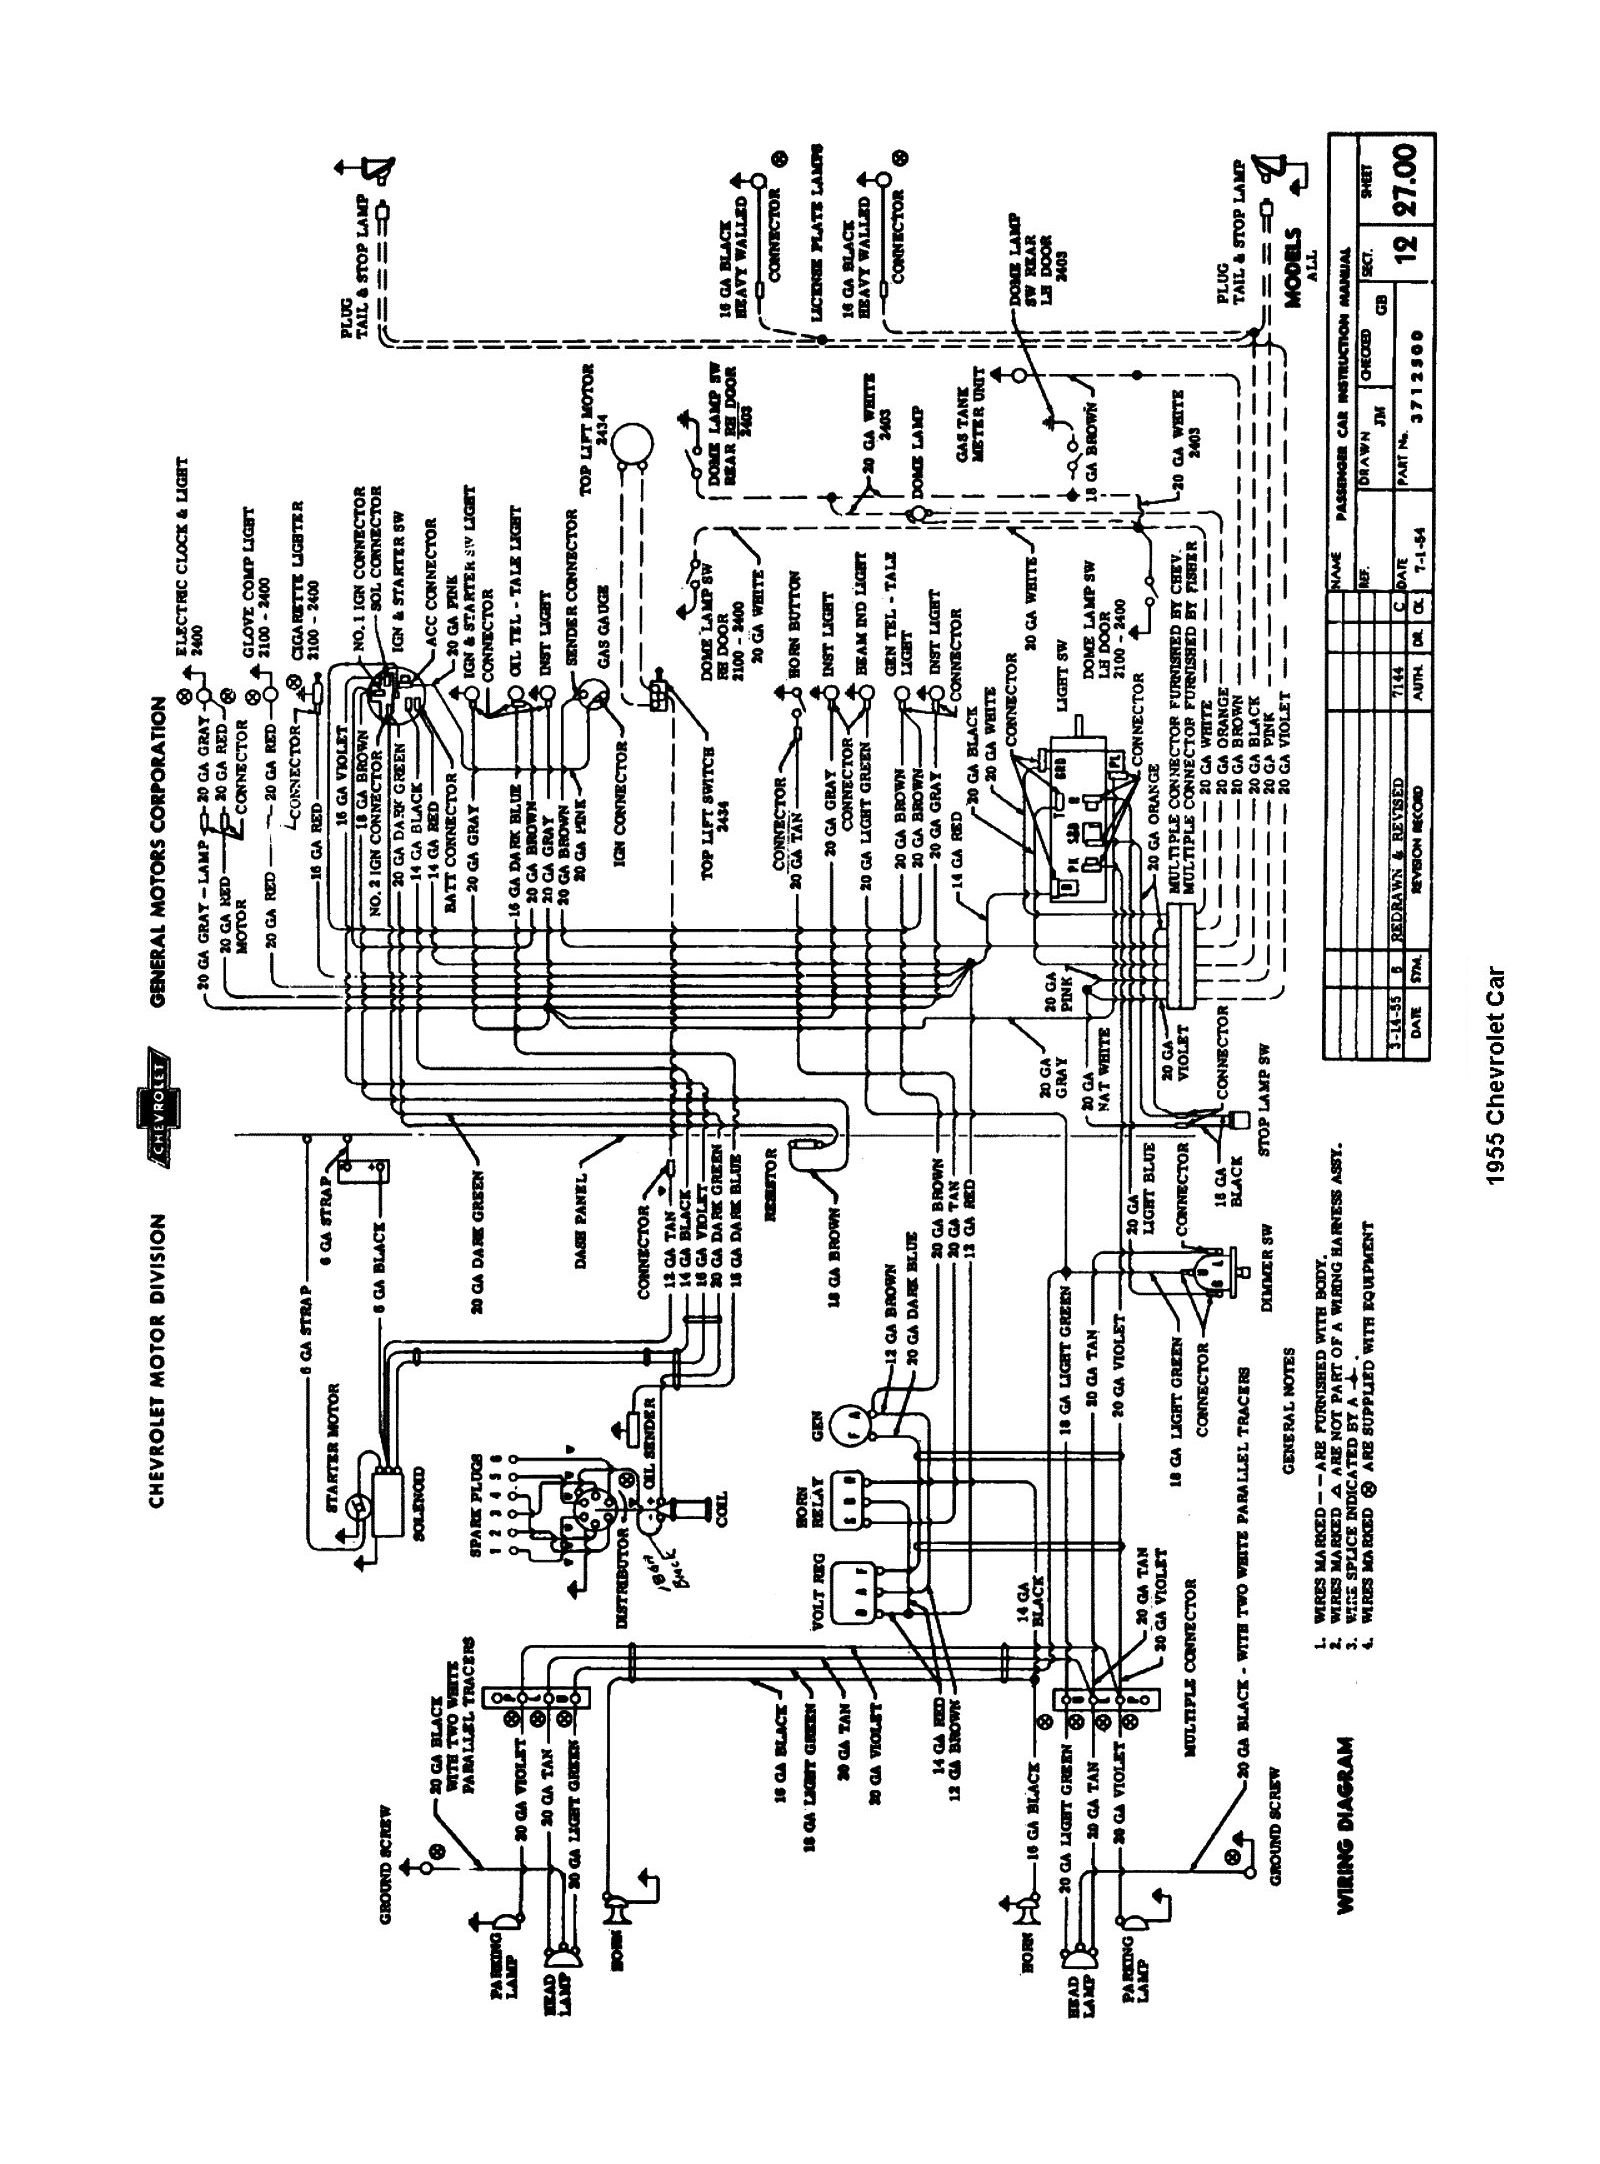 Car on 1979 Corvette Wiring Diagram